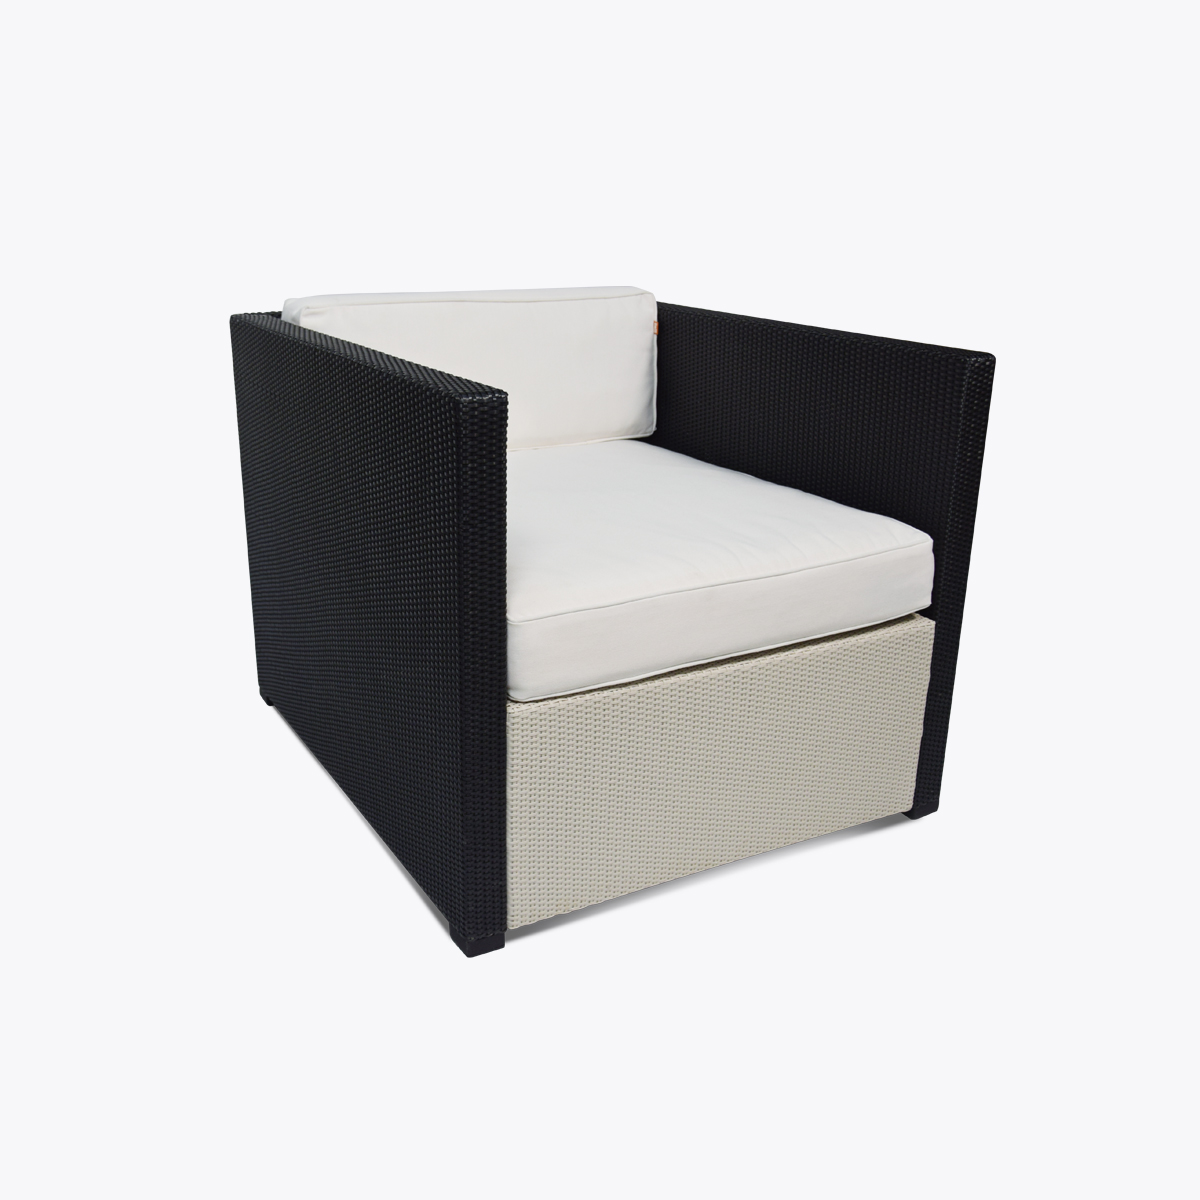 Sessel Rund Design Lounge Sessel Rund Fabulous Cheap Lounge With Lounge